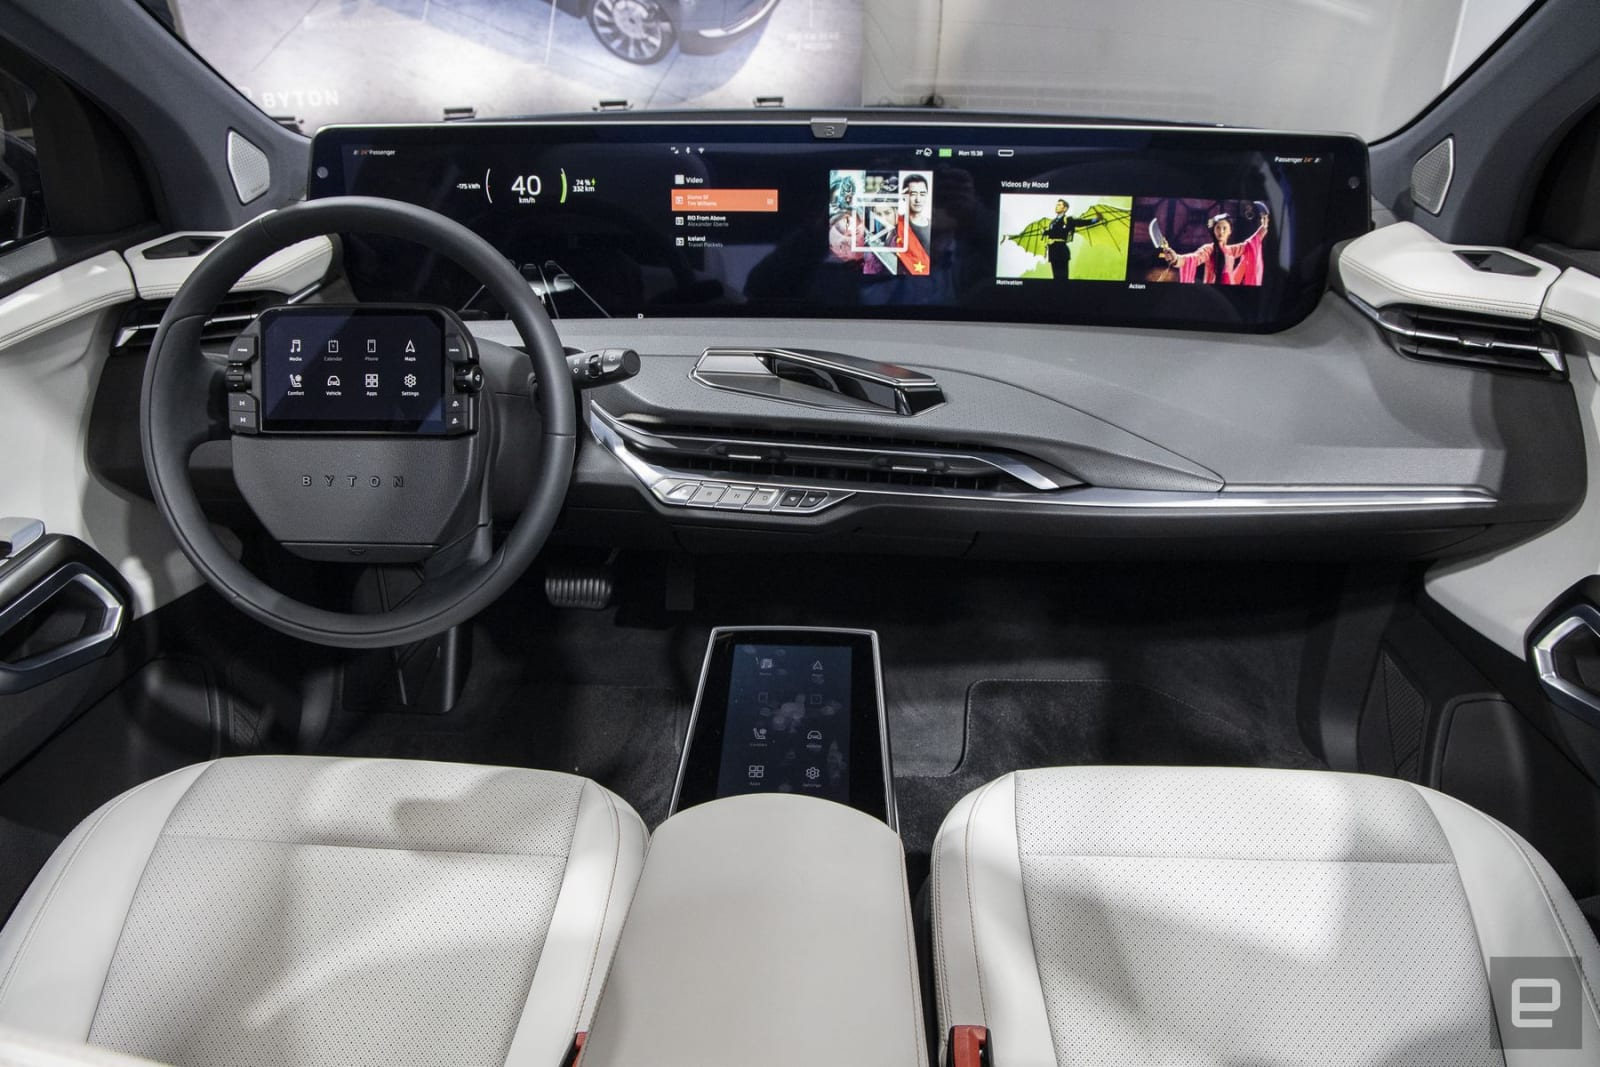 Byton M-Byte EV SUV 48-inch curved display